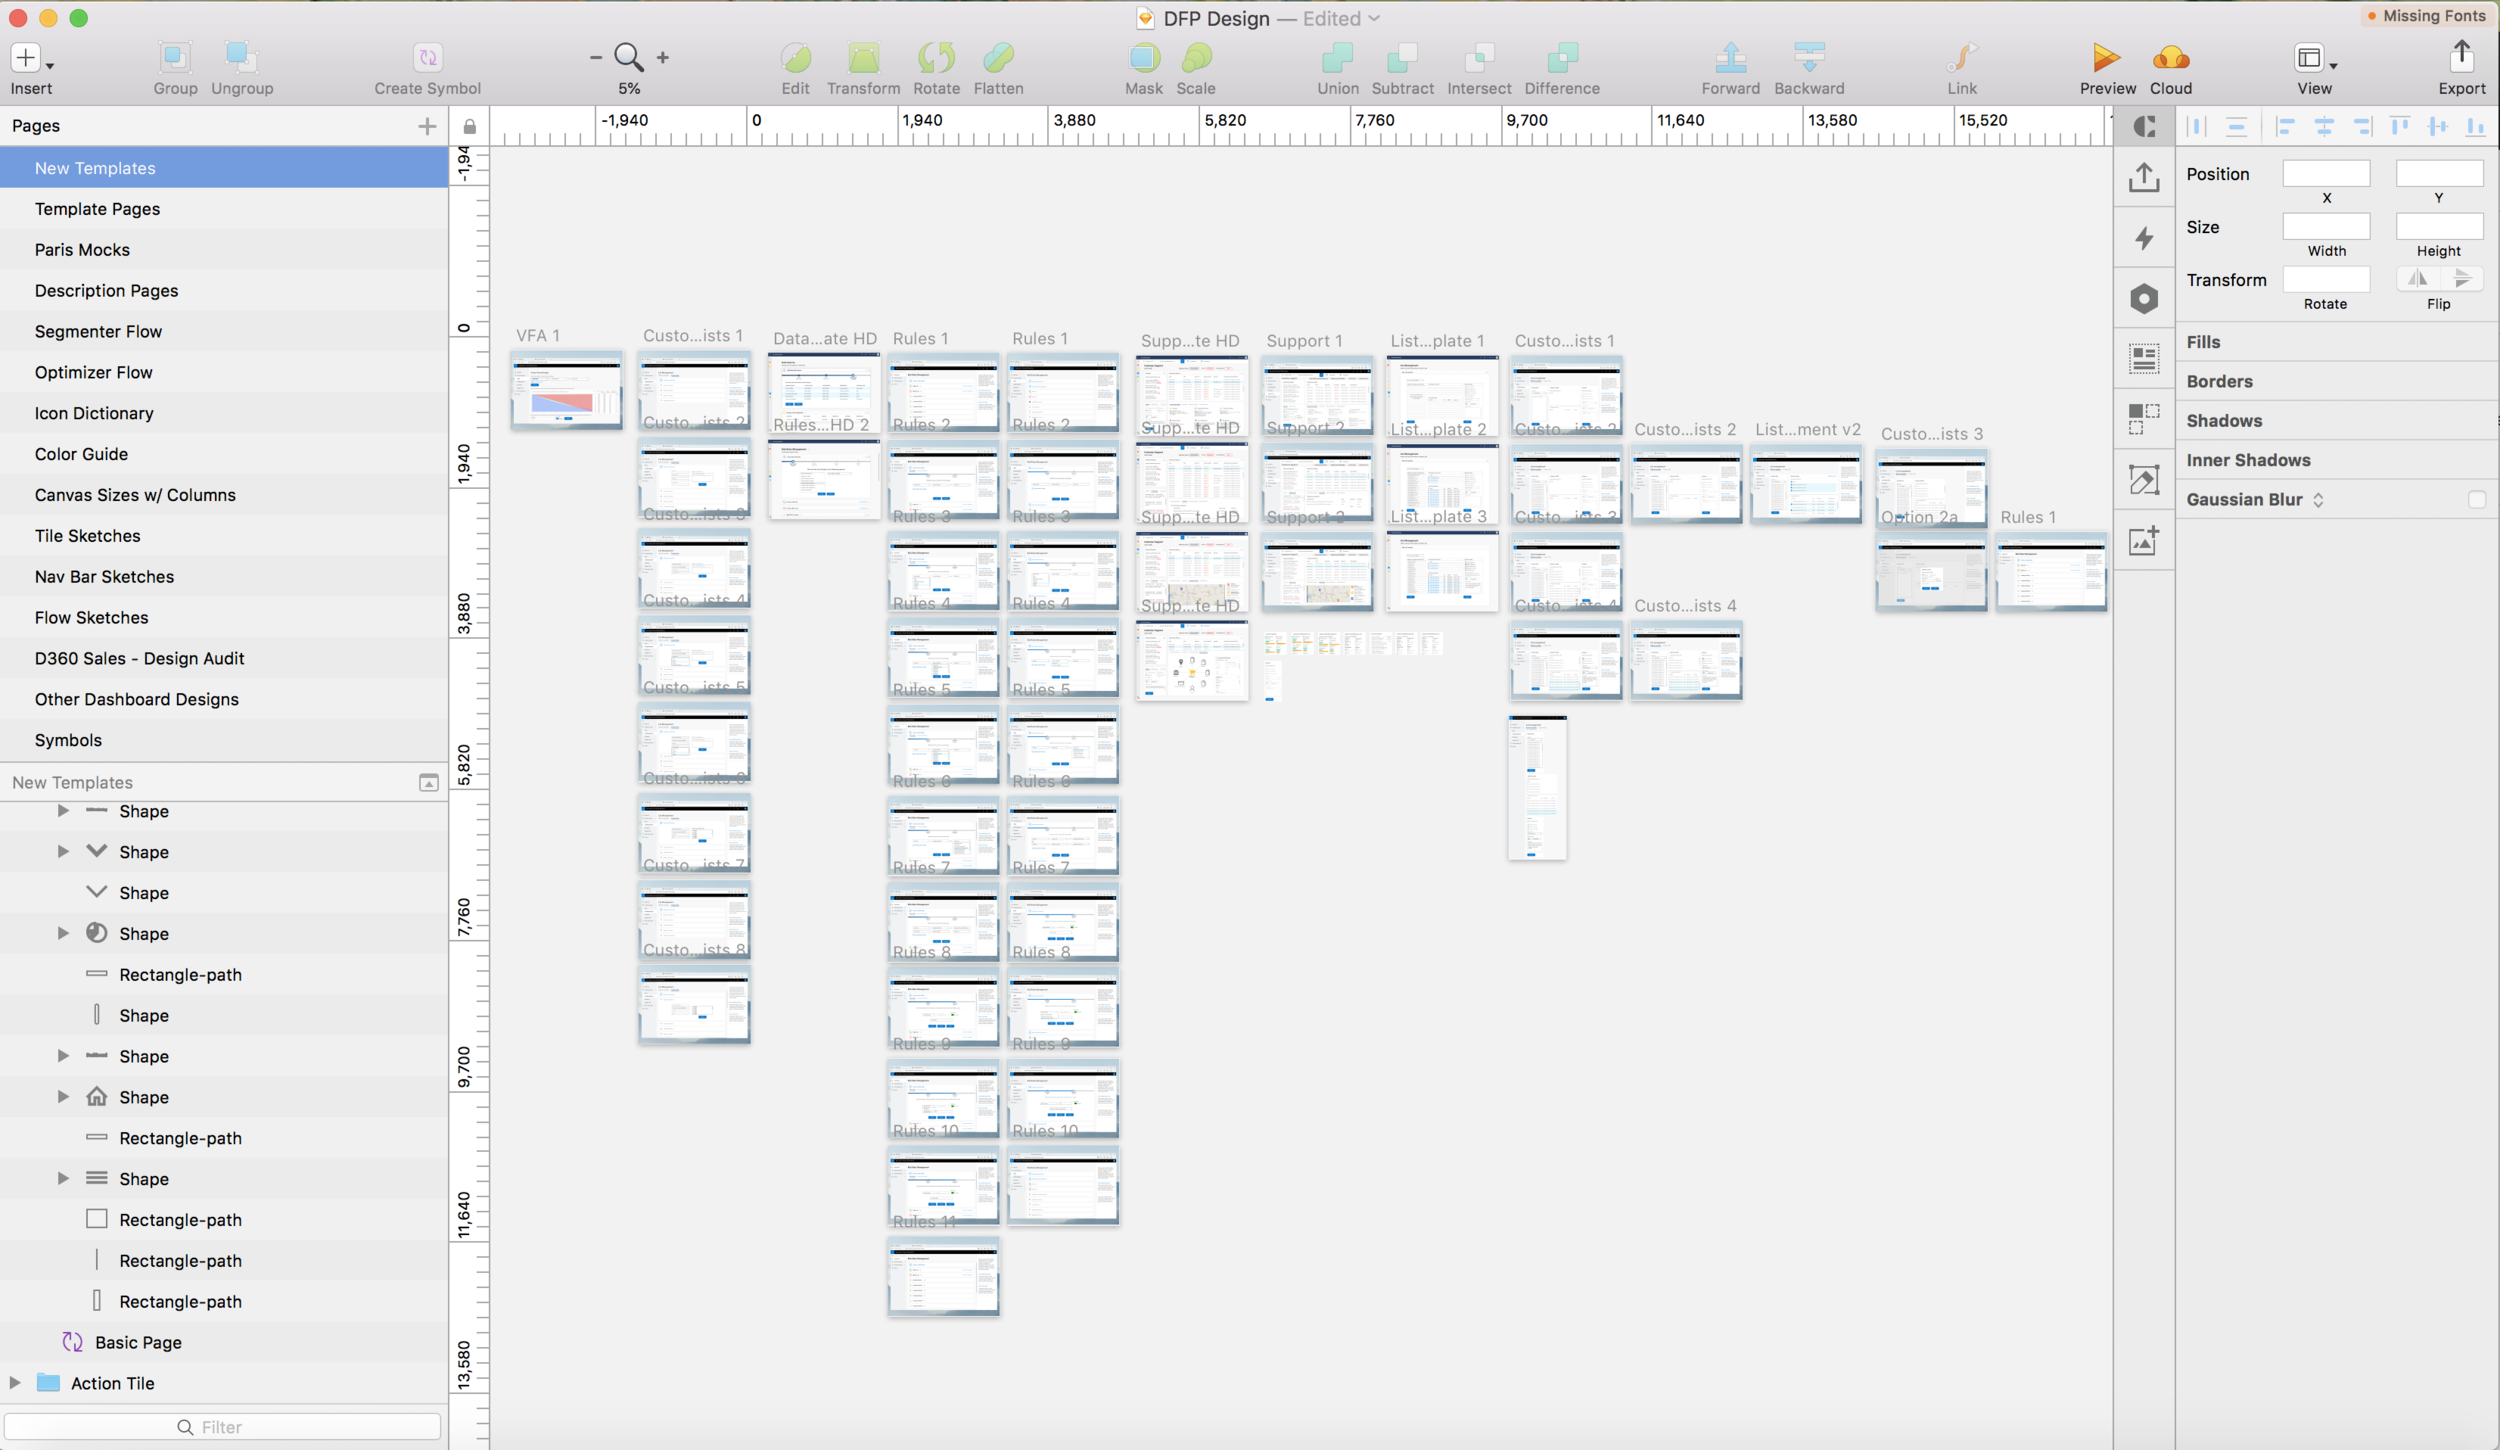 Compiling mock flows in Sketch, which is often faster than my other tools like XD or Figma.